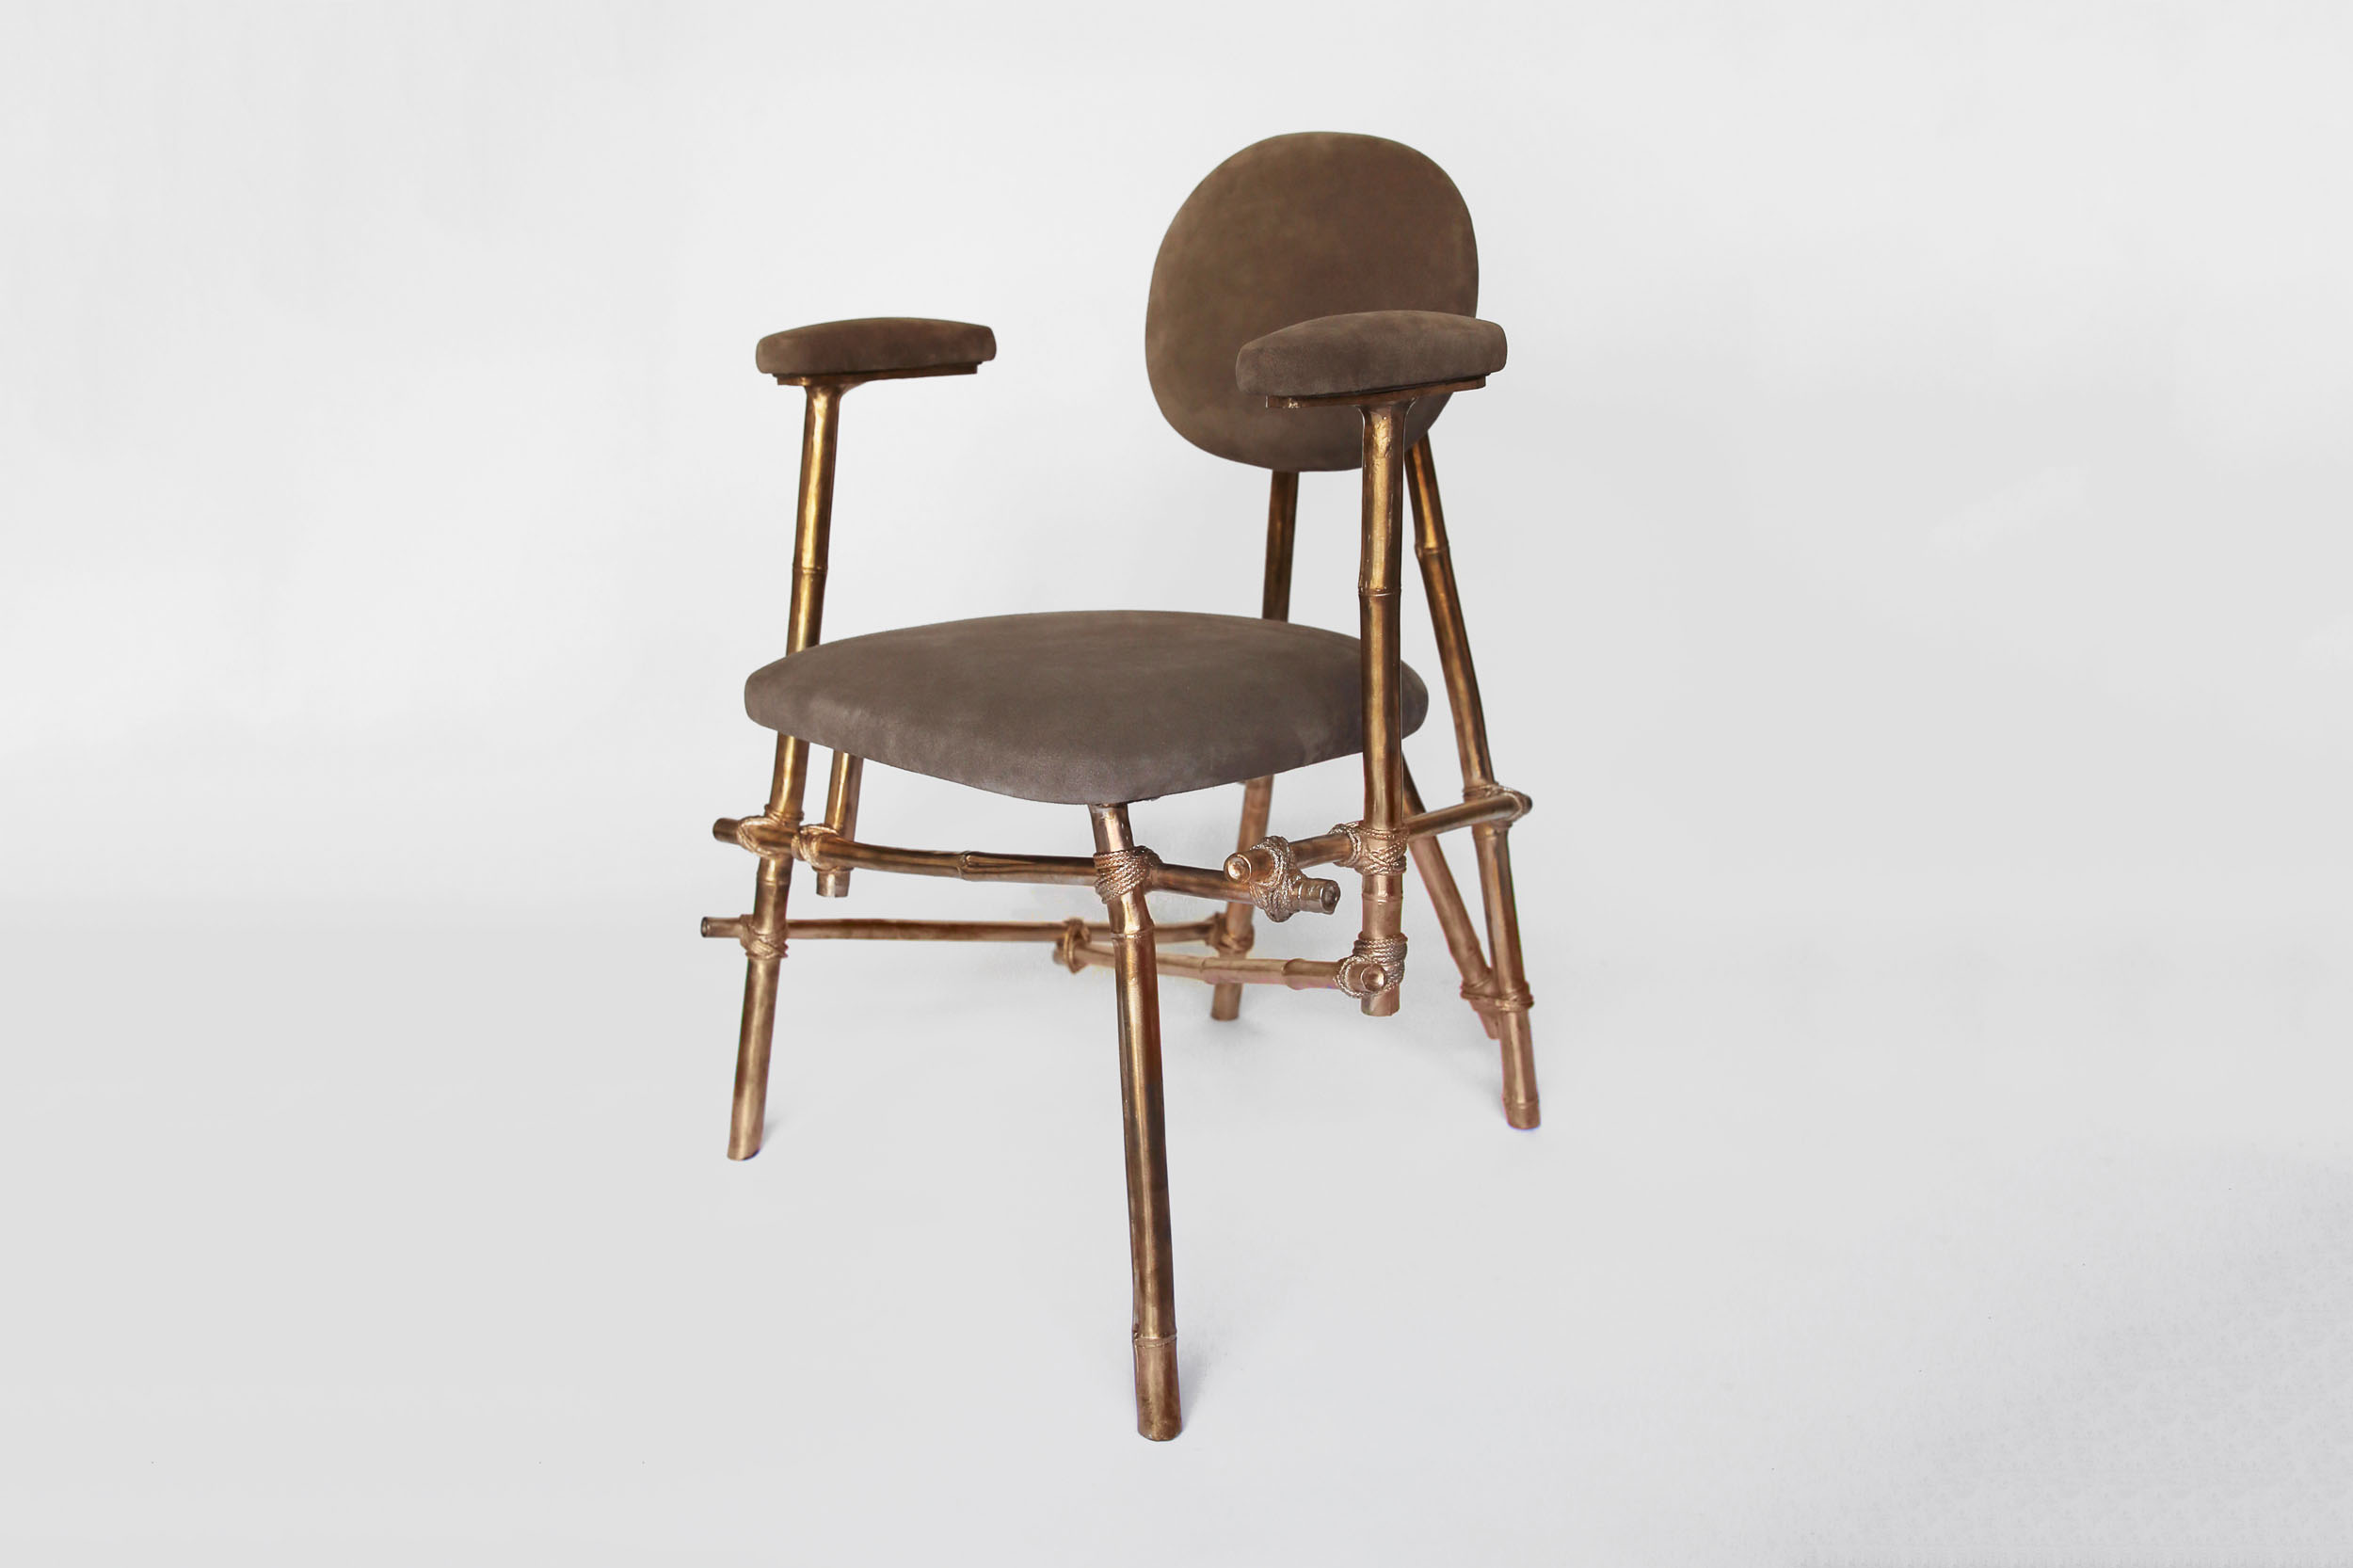 A front view of a Les French chair with bronze cast bamboo frame and leather upholstered seat and rests